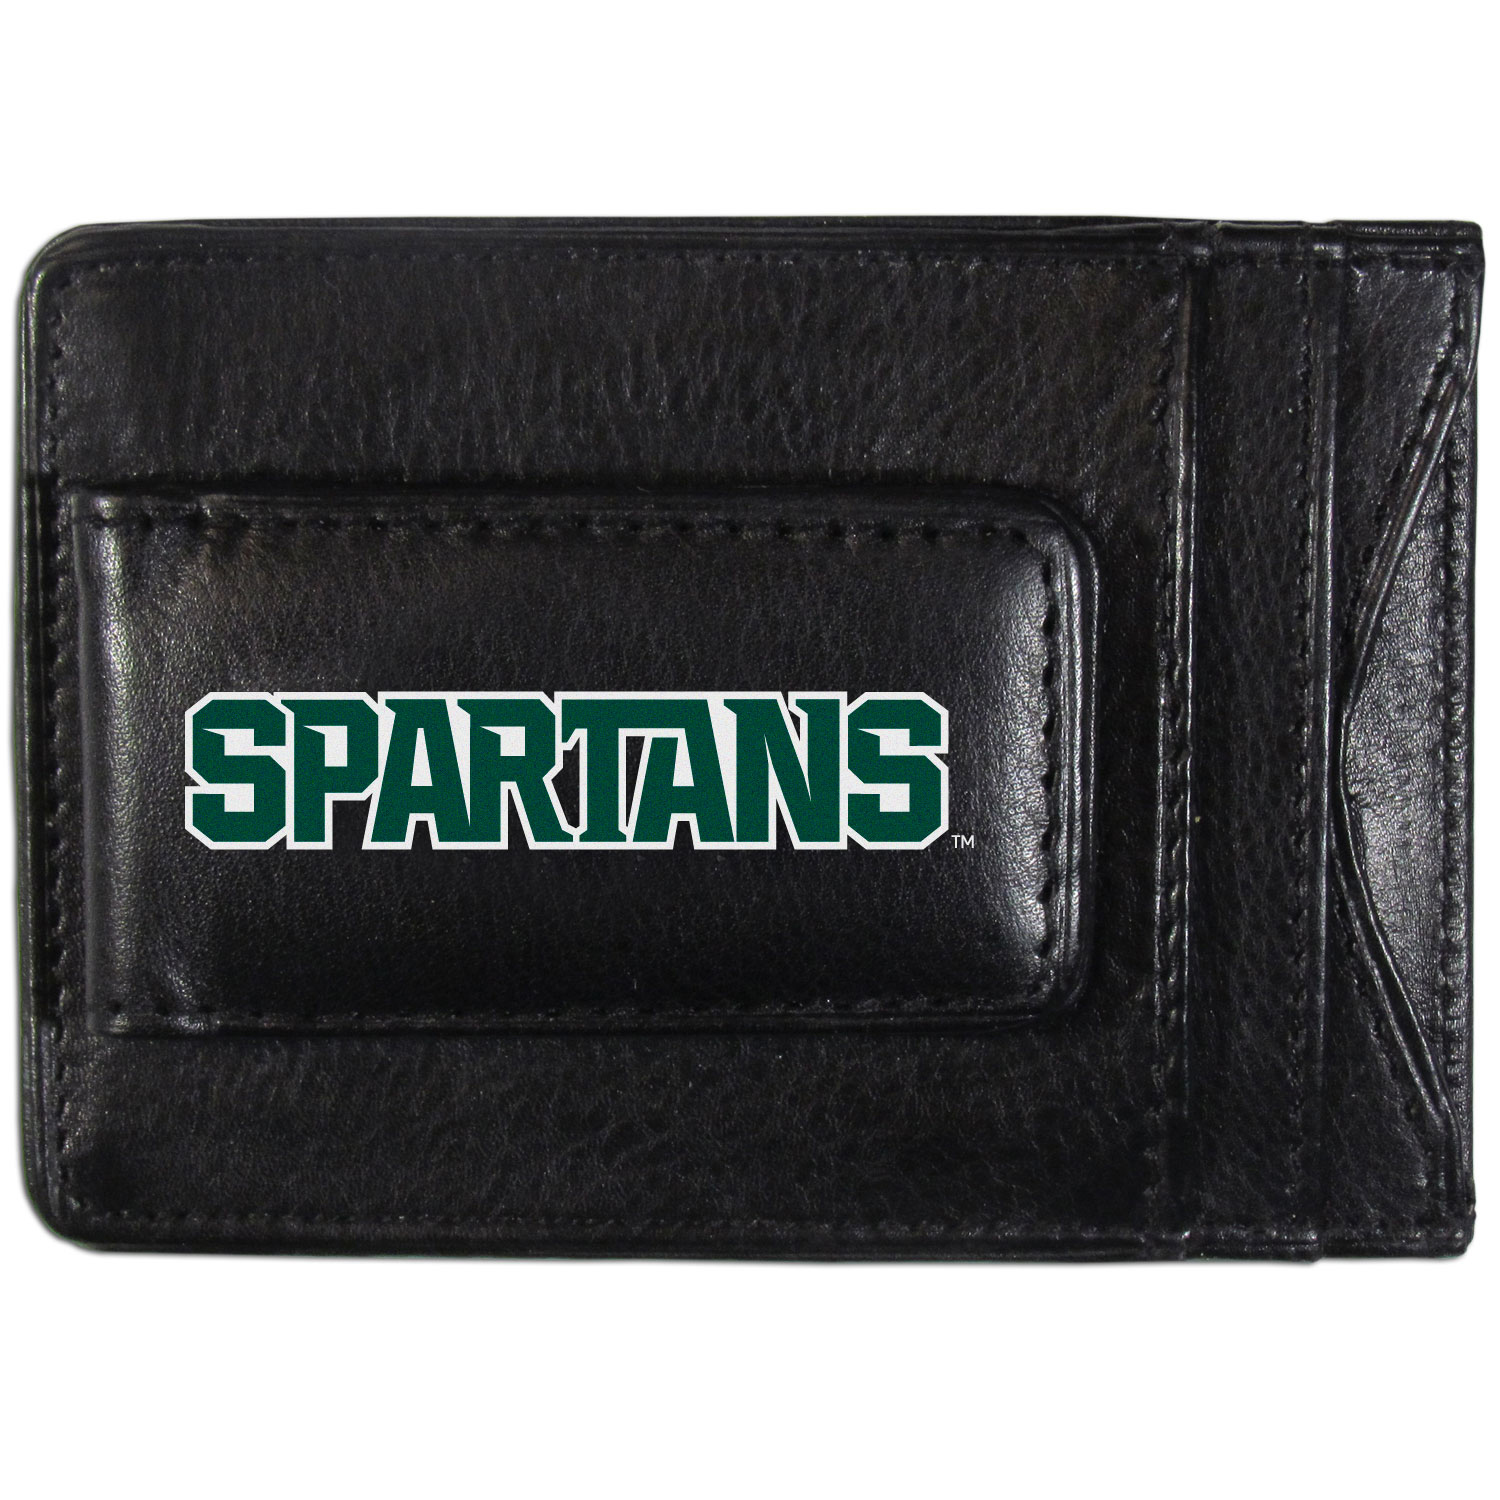 Michigan St. Spartans Logo Leather Cash and Cardholder - This super slim leather wallet lets you have all the benefits of a money clip while keeping the organization of a wallet. On one side of this front pocket wallet there is a strong, magnetic money clip to keep your cash easily accessible and the?Michigan St. Spartans team logo on the front. The versatile men's accessory is a perfect addition to your fan apparel.